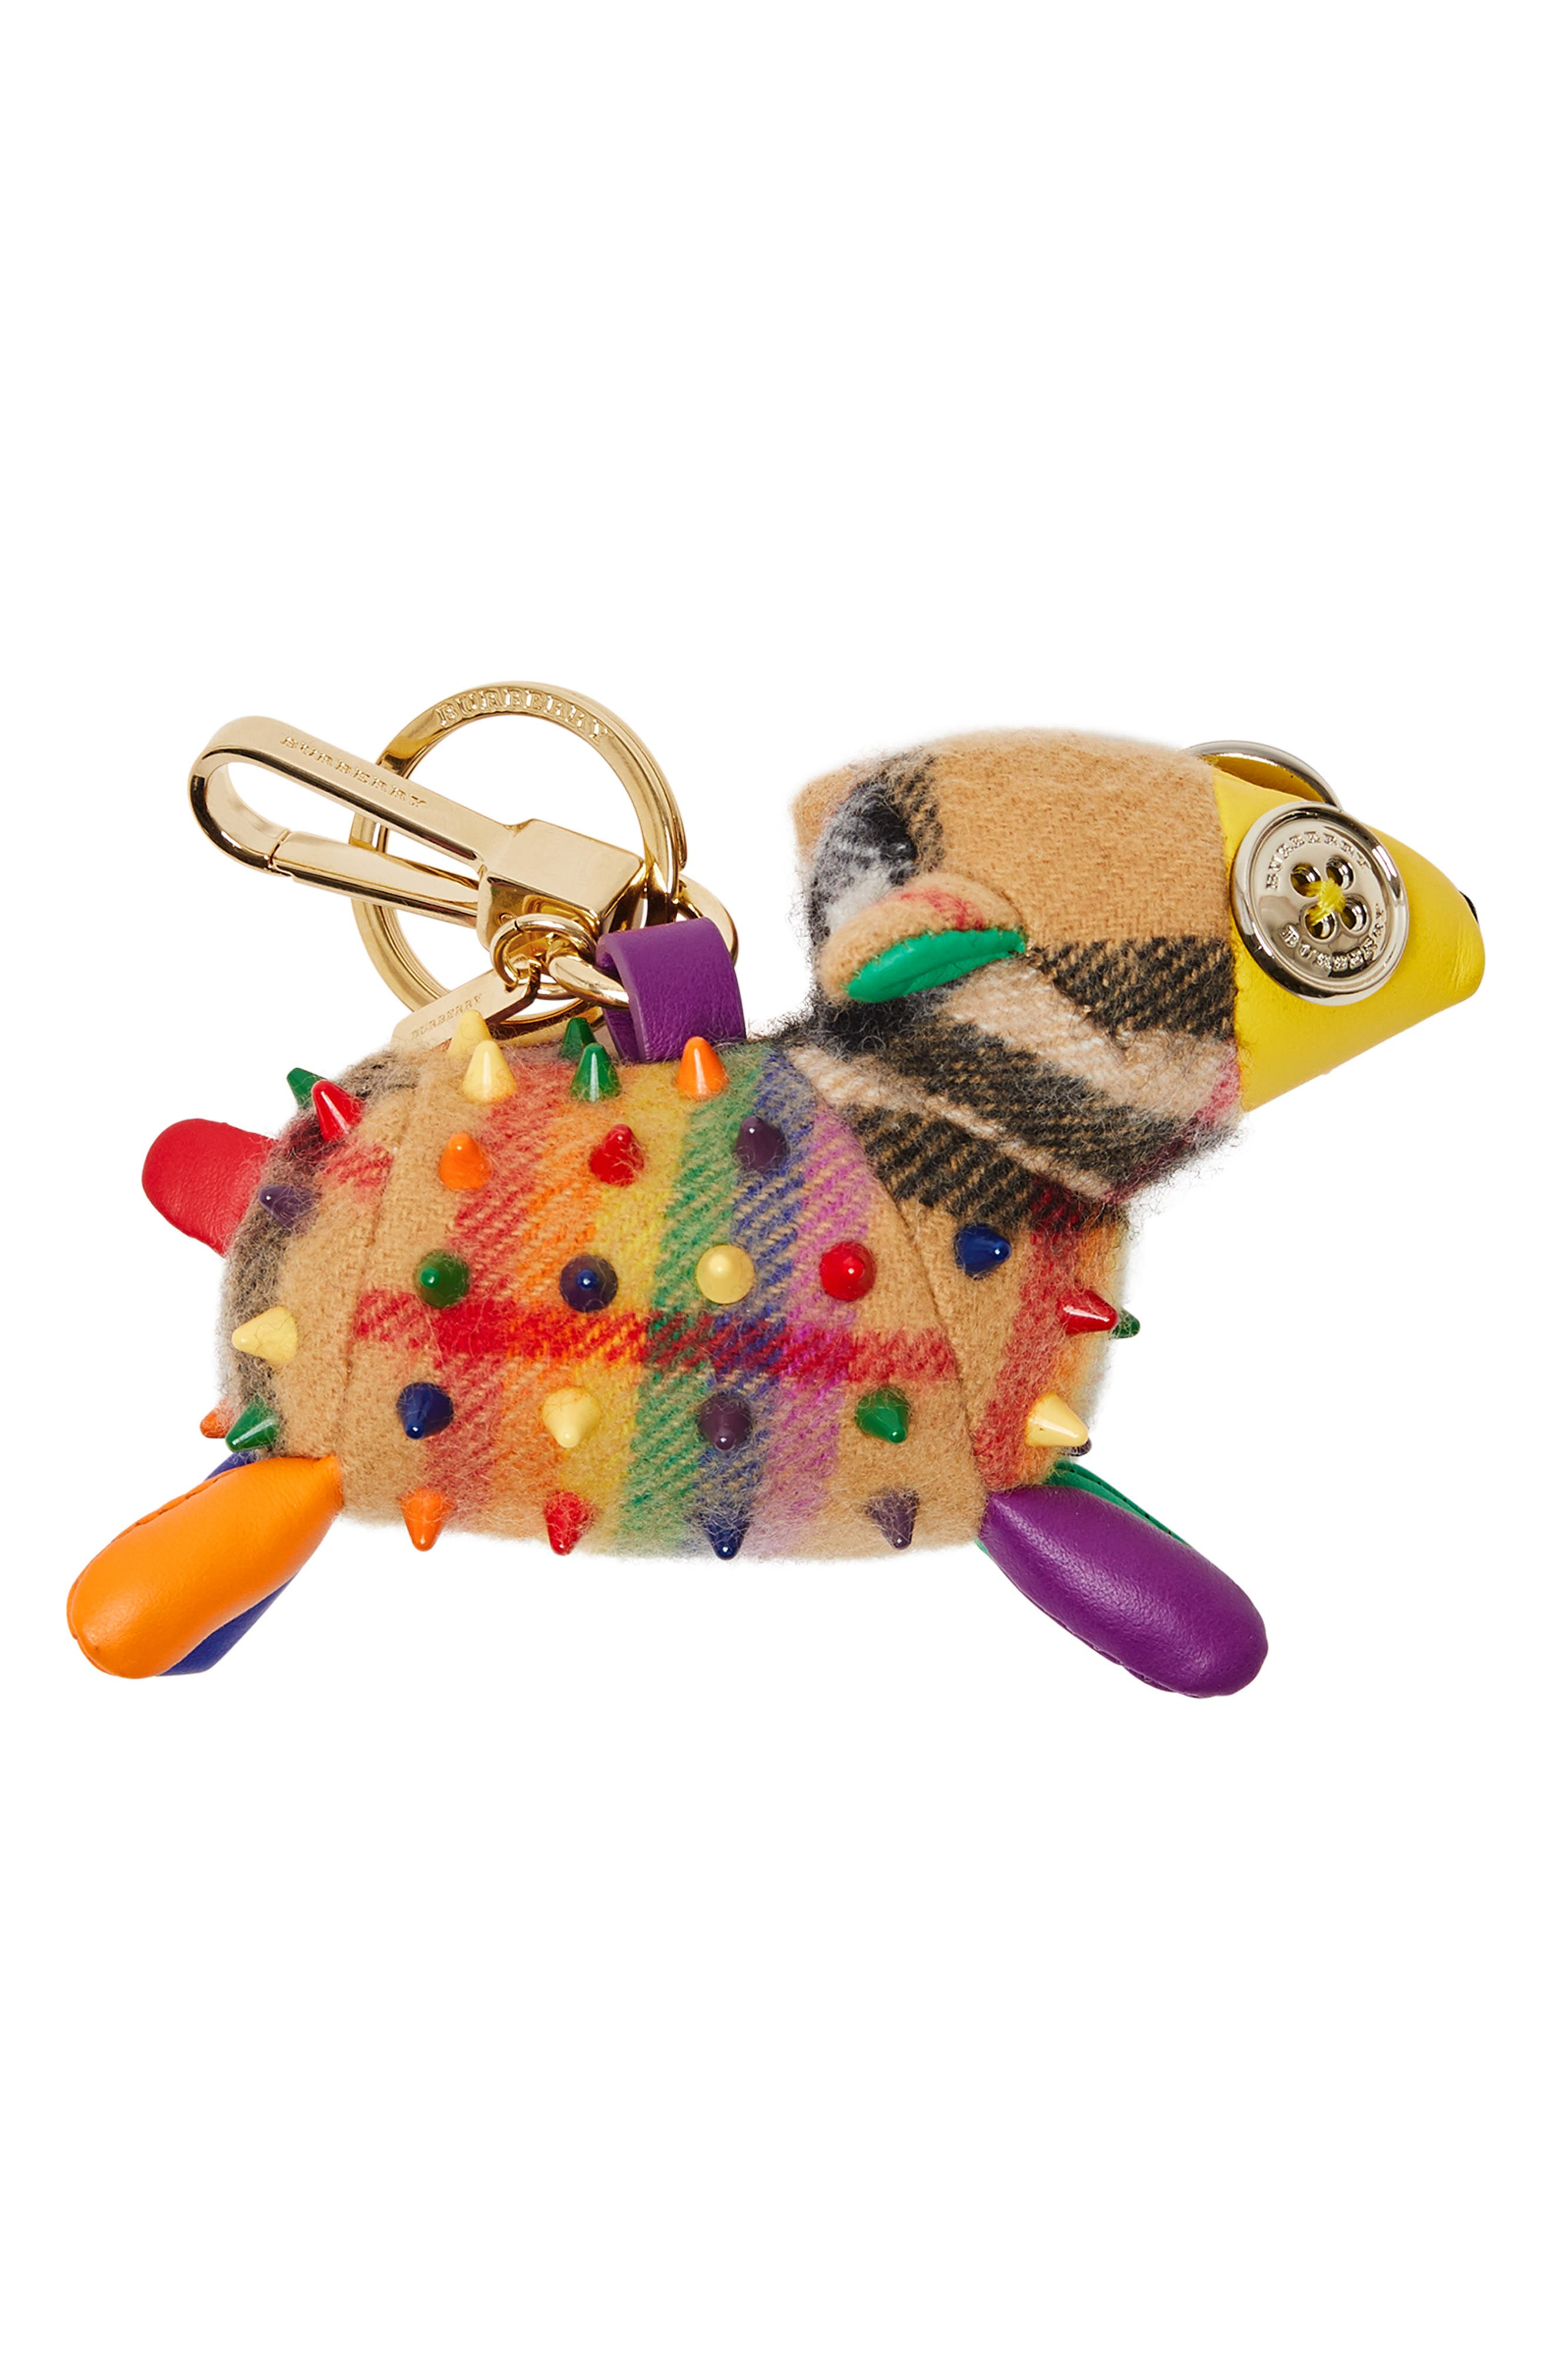 BURBERRY Wendy the Sheep Rainbow Check Cashmere Bag Charm, Main, color, 250